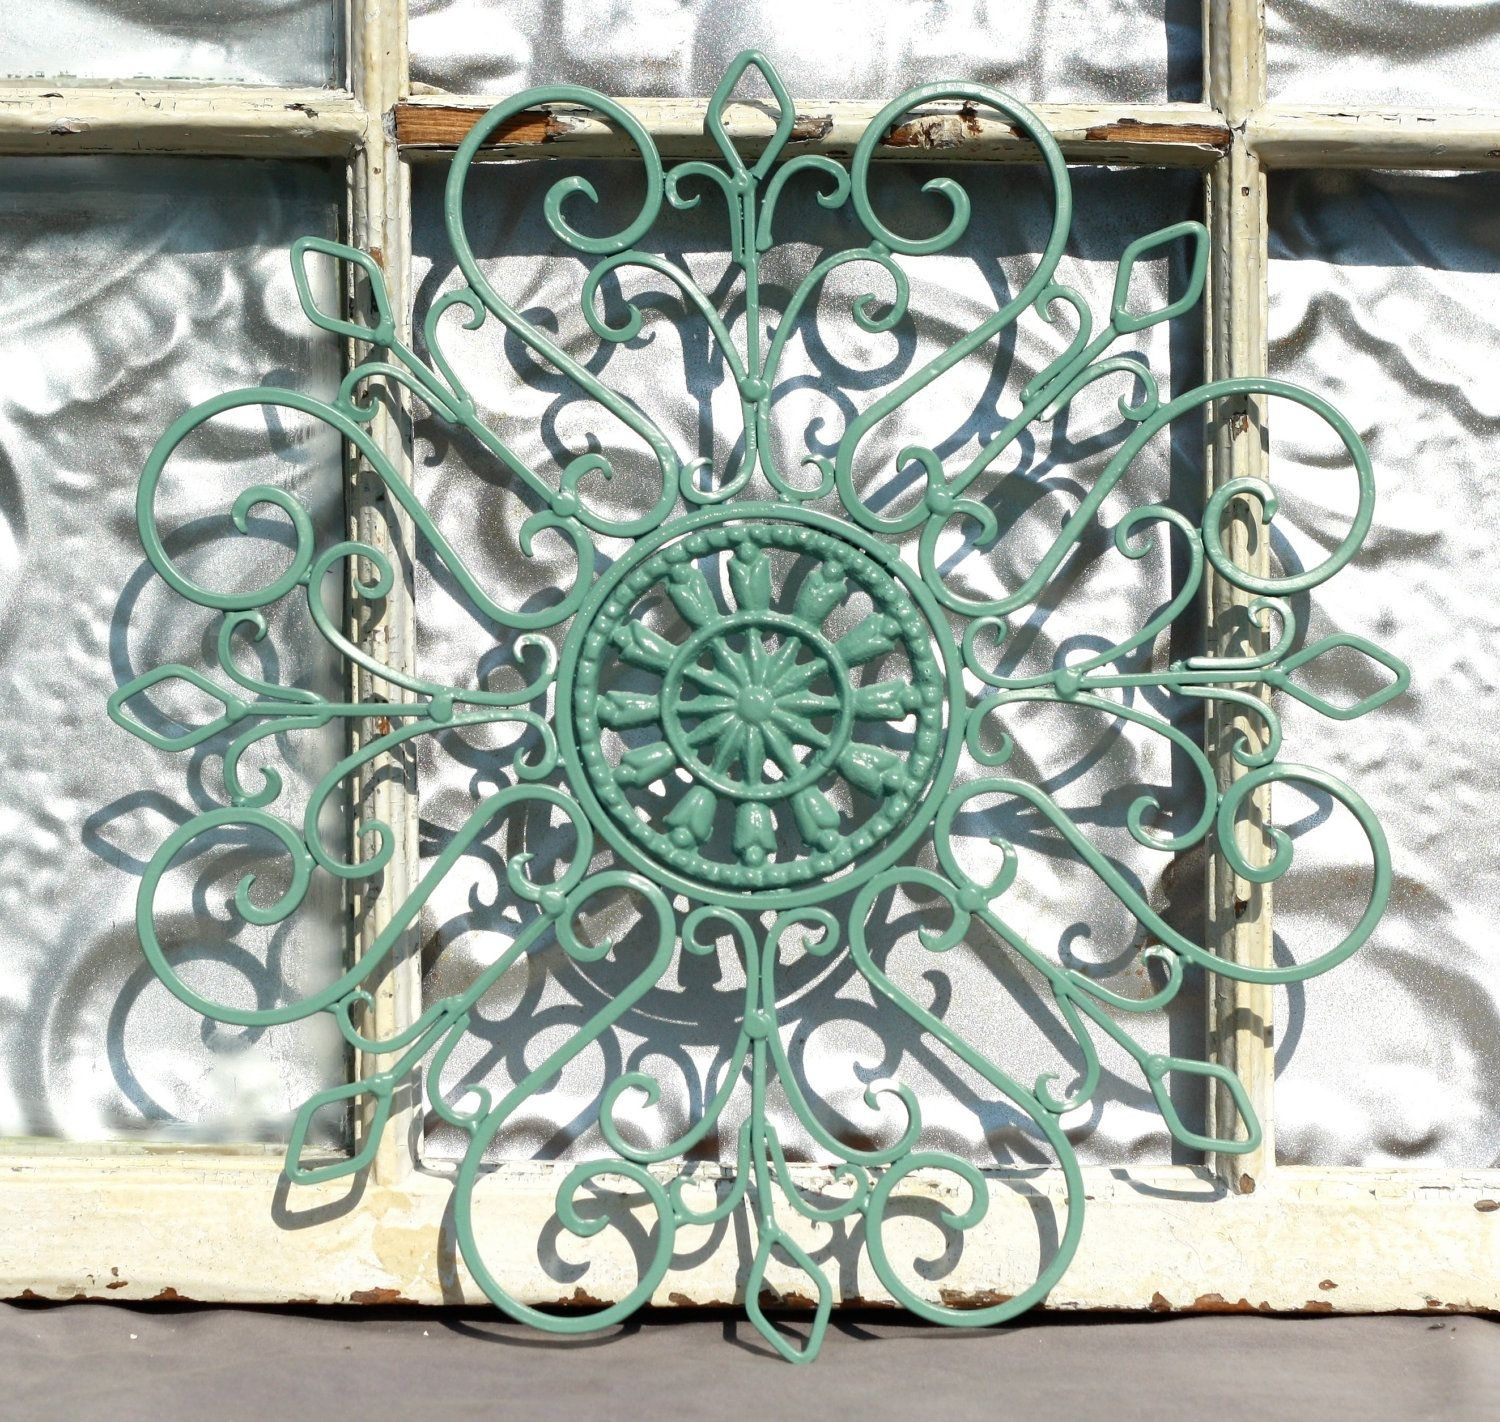 Wrought Iron Wall Decor/ Metal Wall Hanging/ Indoor/ Outdoor Metal Pertaining To Most Recent Abstract Outdoor Metal Wall Art (View 14 of 14)